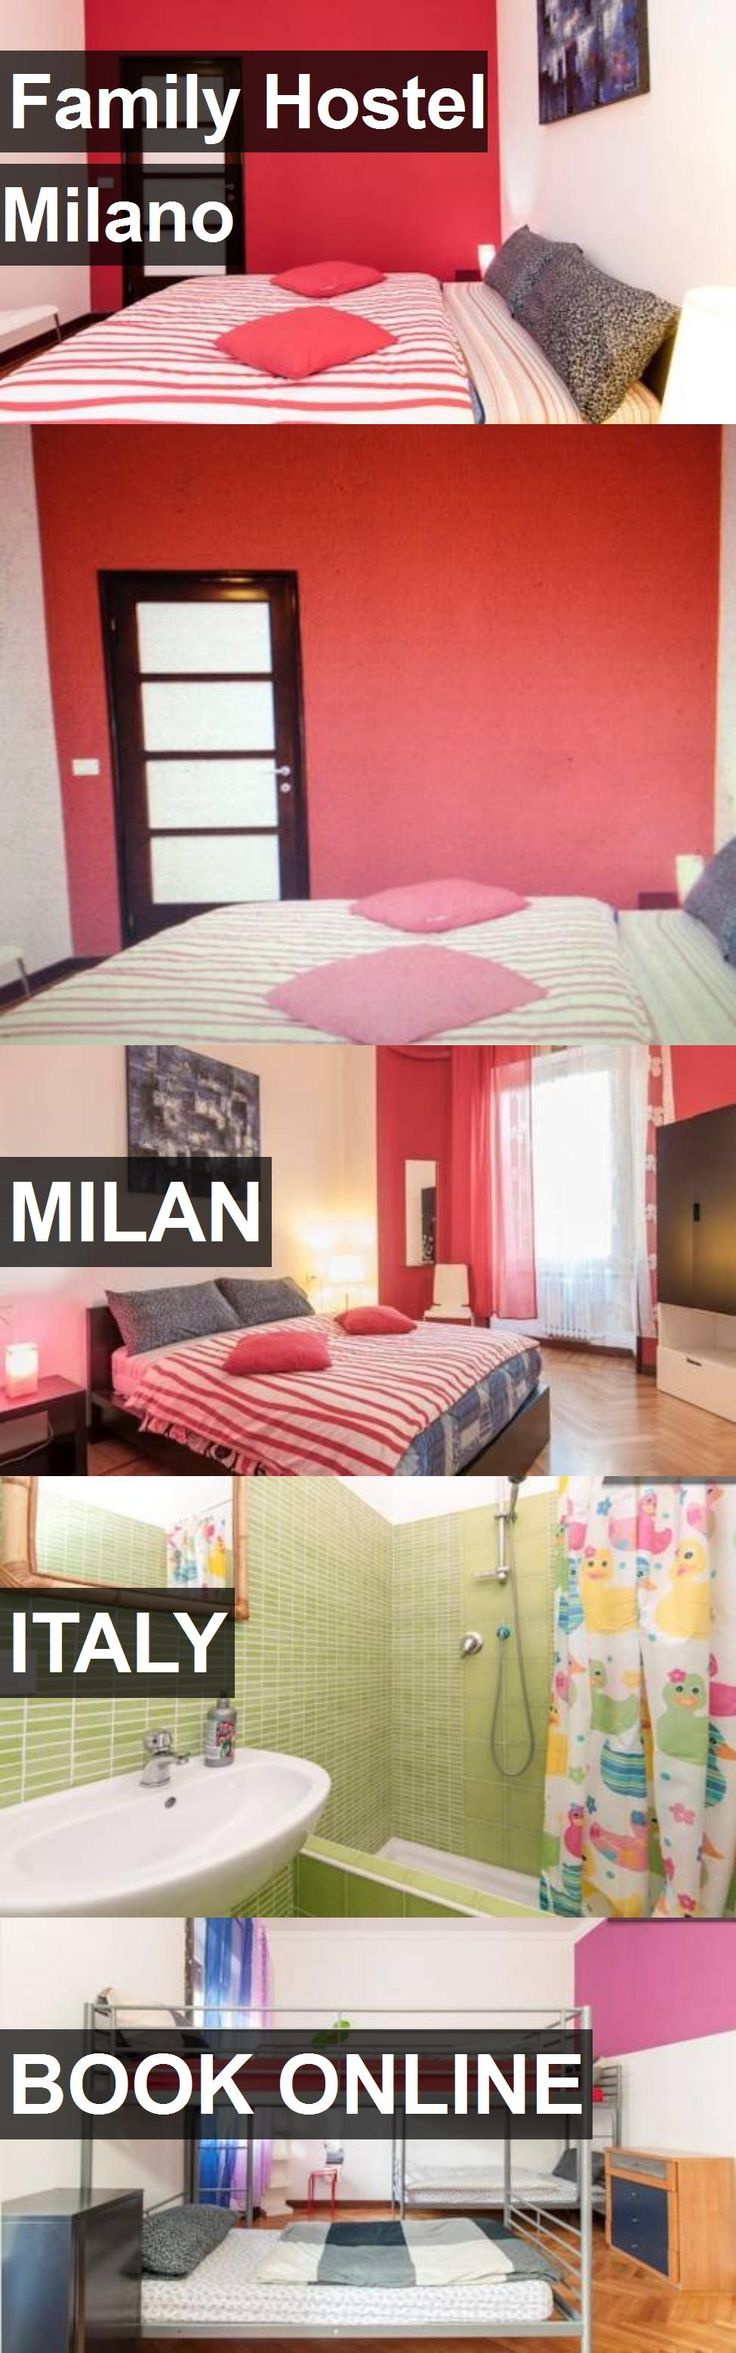 Family Hostel Milano in Milan, Italy. For more information, photos, reviews and best prices please follow the link. #Italy #Milan #travel #vacation #hostel